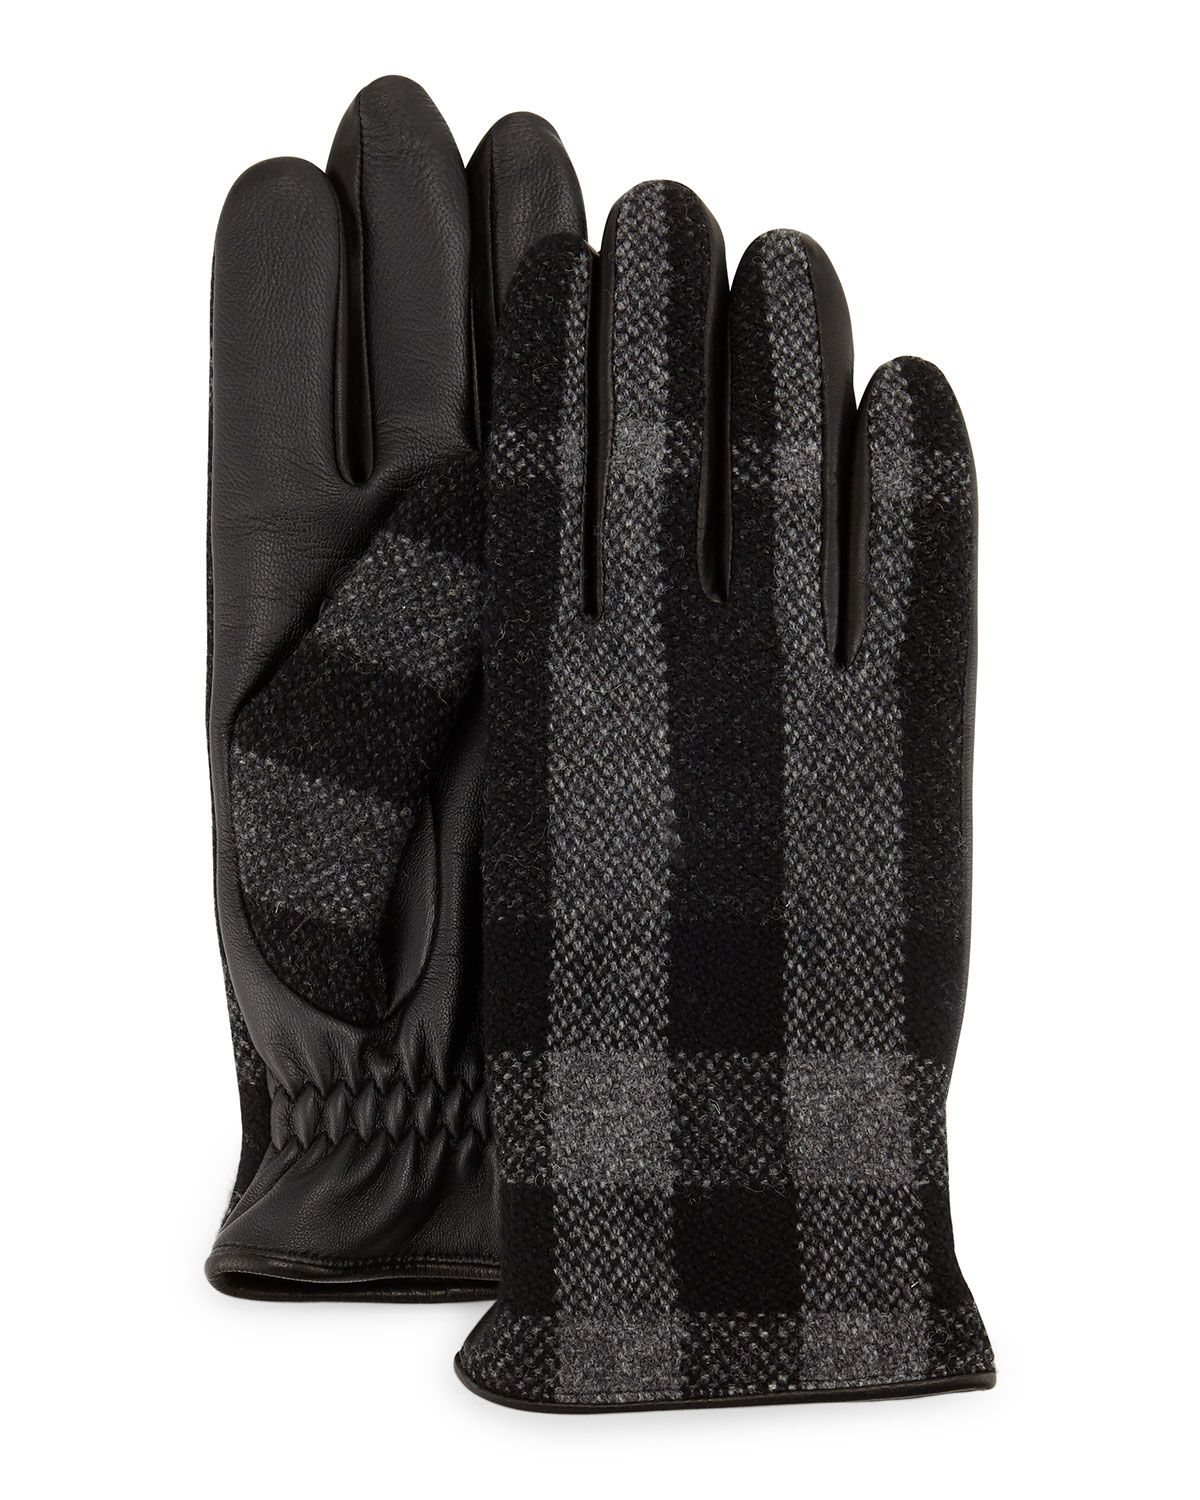 Mens sizes in gloves - Oscar Wool Leather Check Gloves Men S Size 8 5 Charcol Burberry